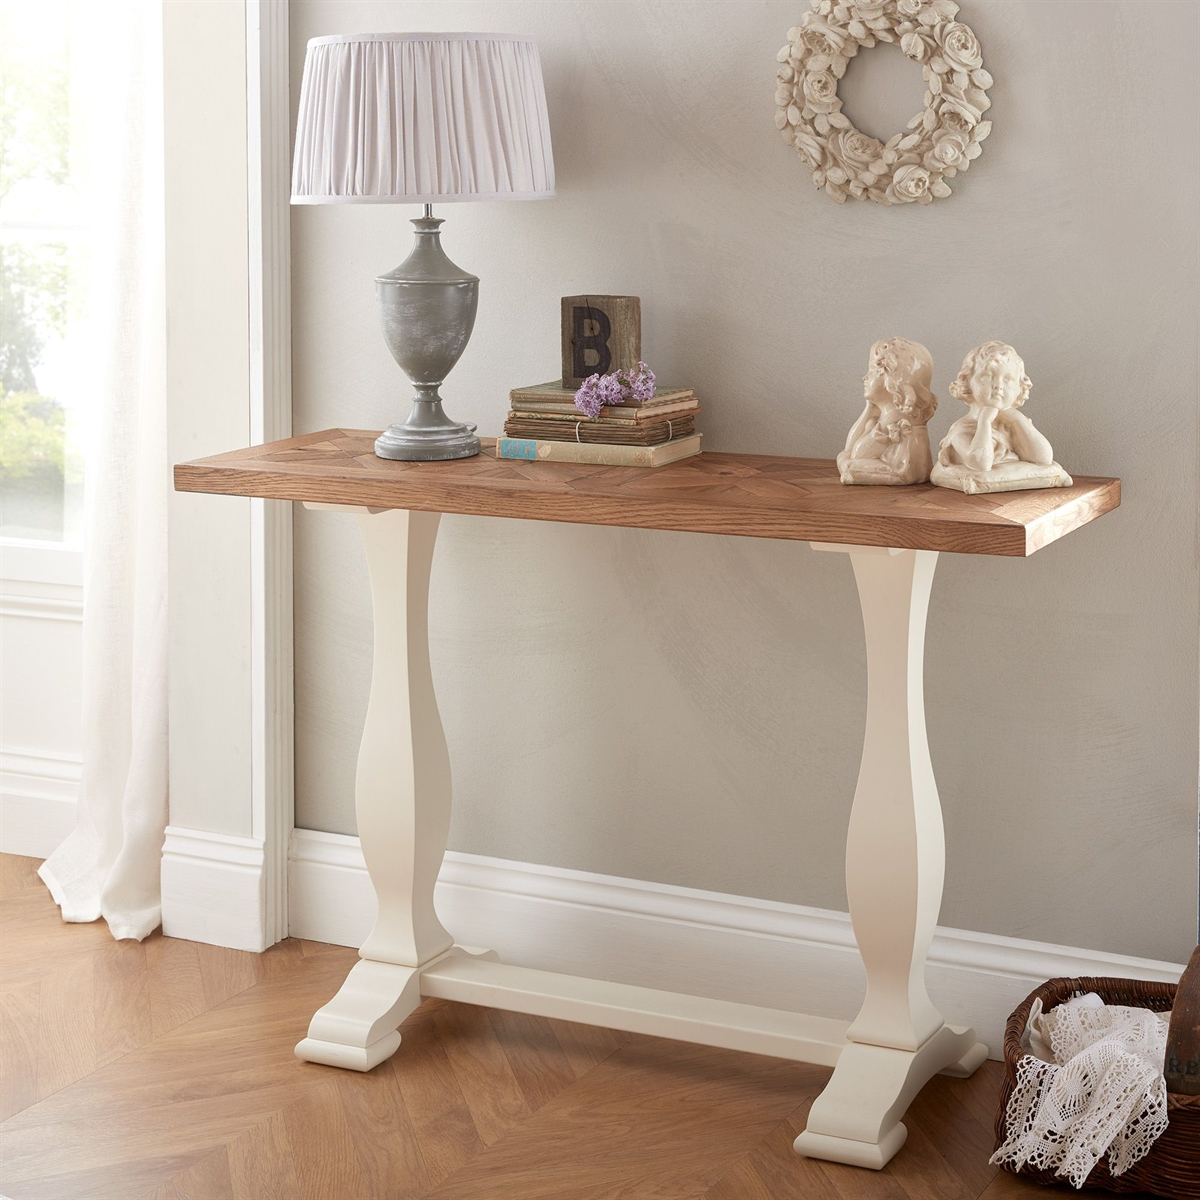 Belgrave Console Table - 2 Tone